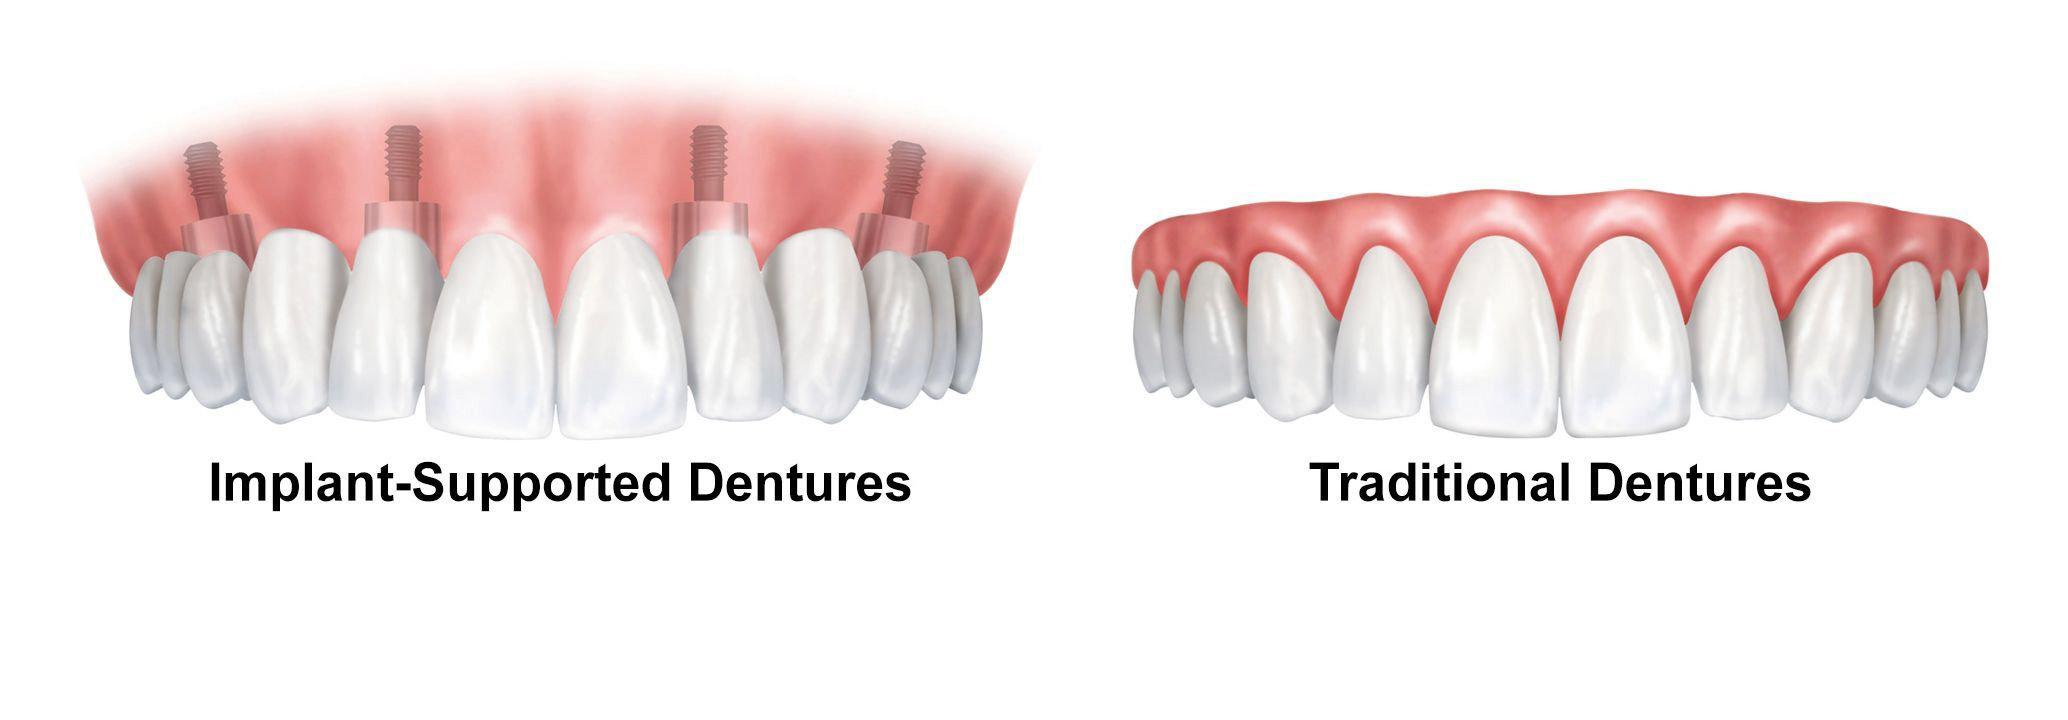 Implant-supported dentures and traditional dentures